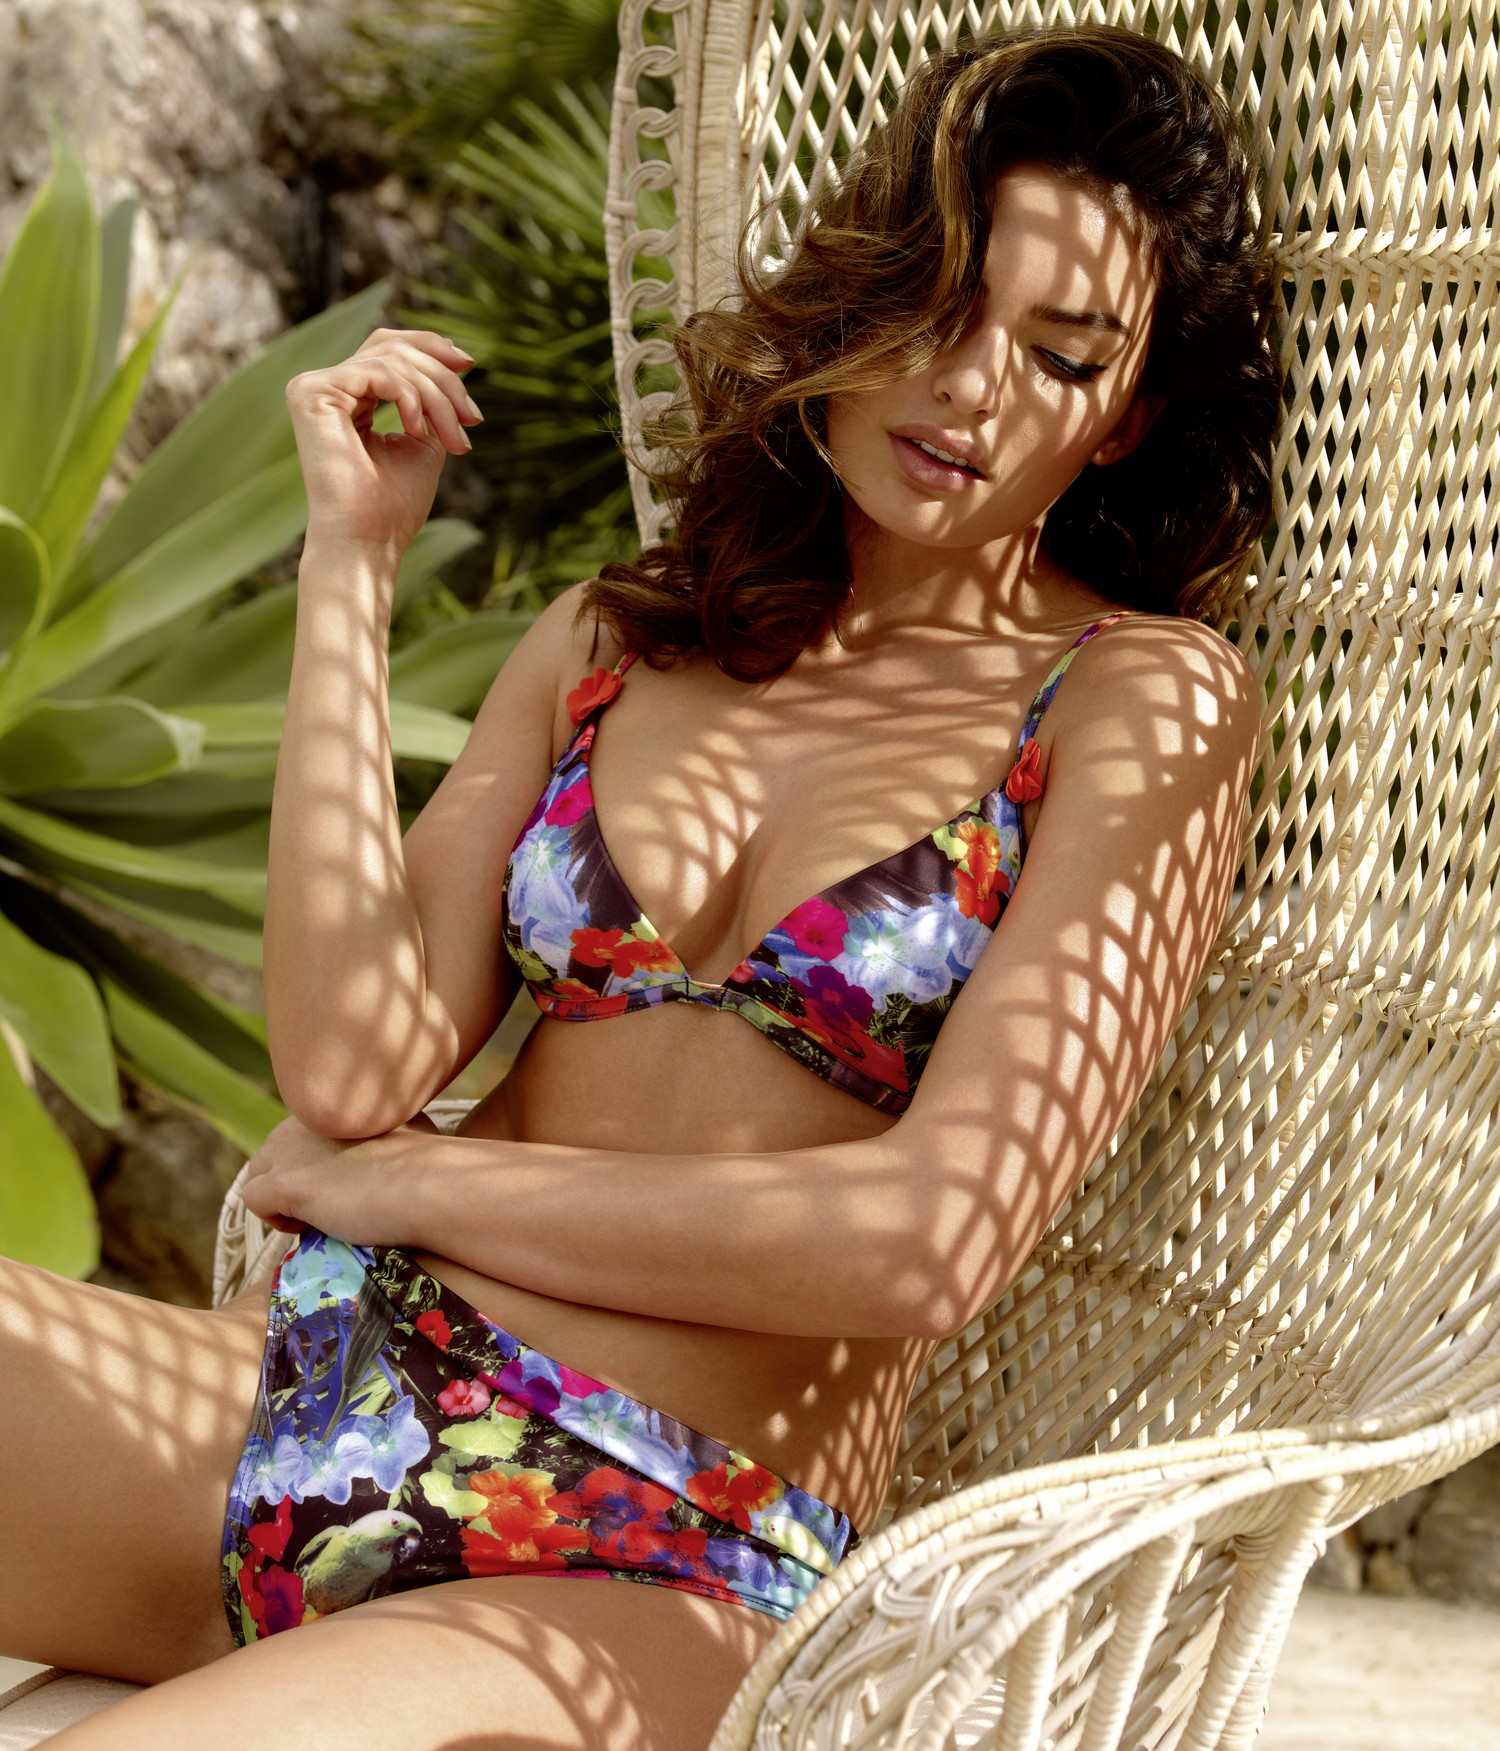 Alyssa-Miller-Manor-swimwear-3